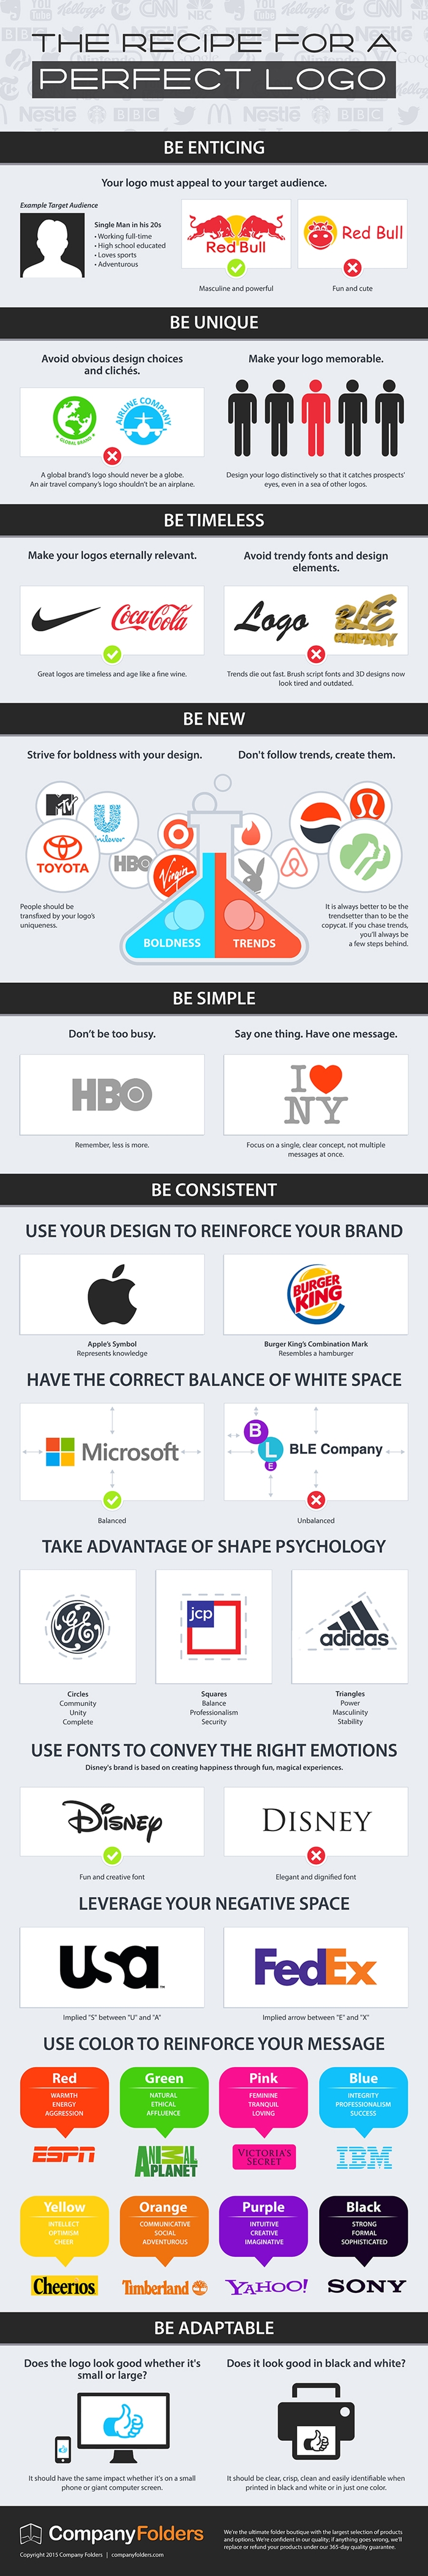 perfect-logo-design-infographic-700